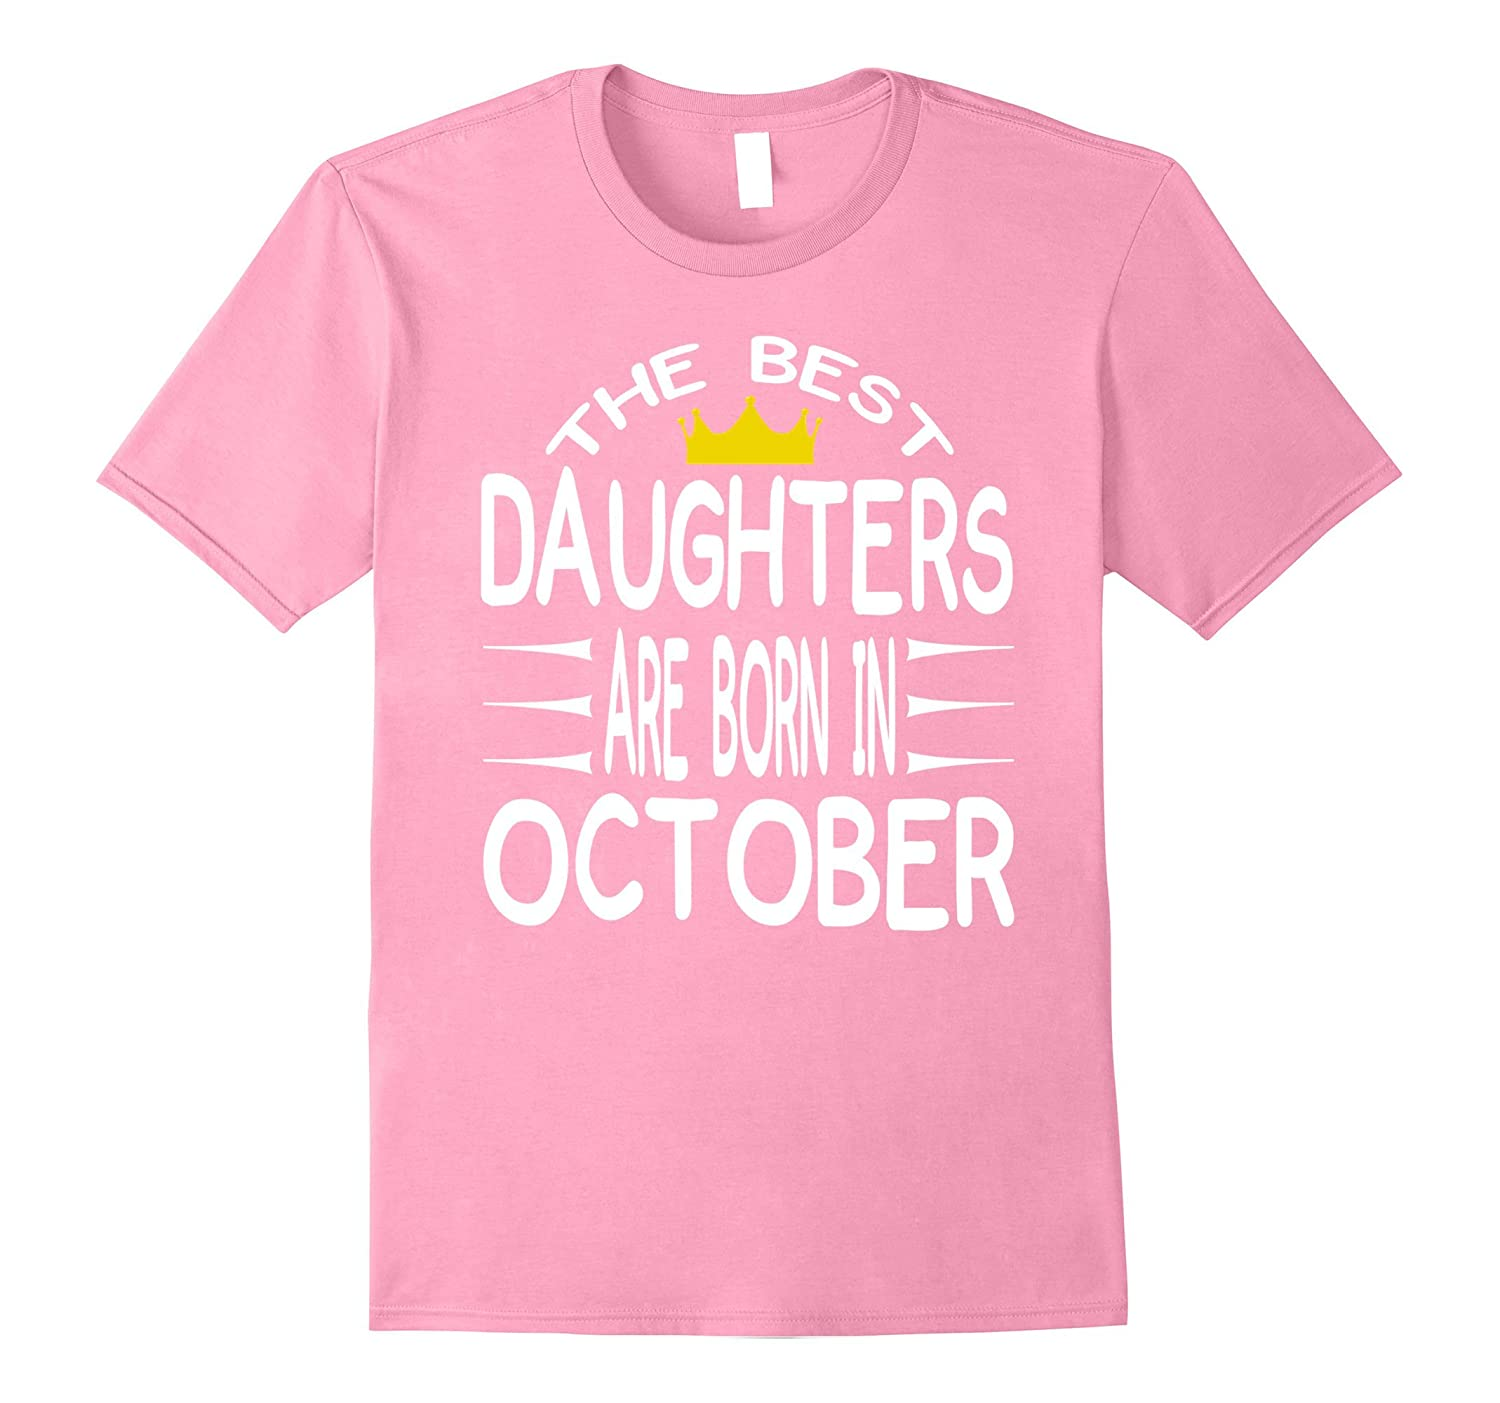 Birthday Tshirt For Daughters Born In October - Family Tee-FL